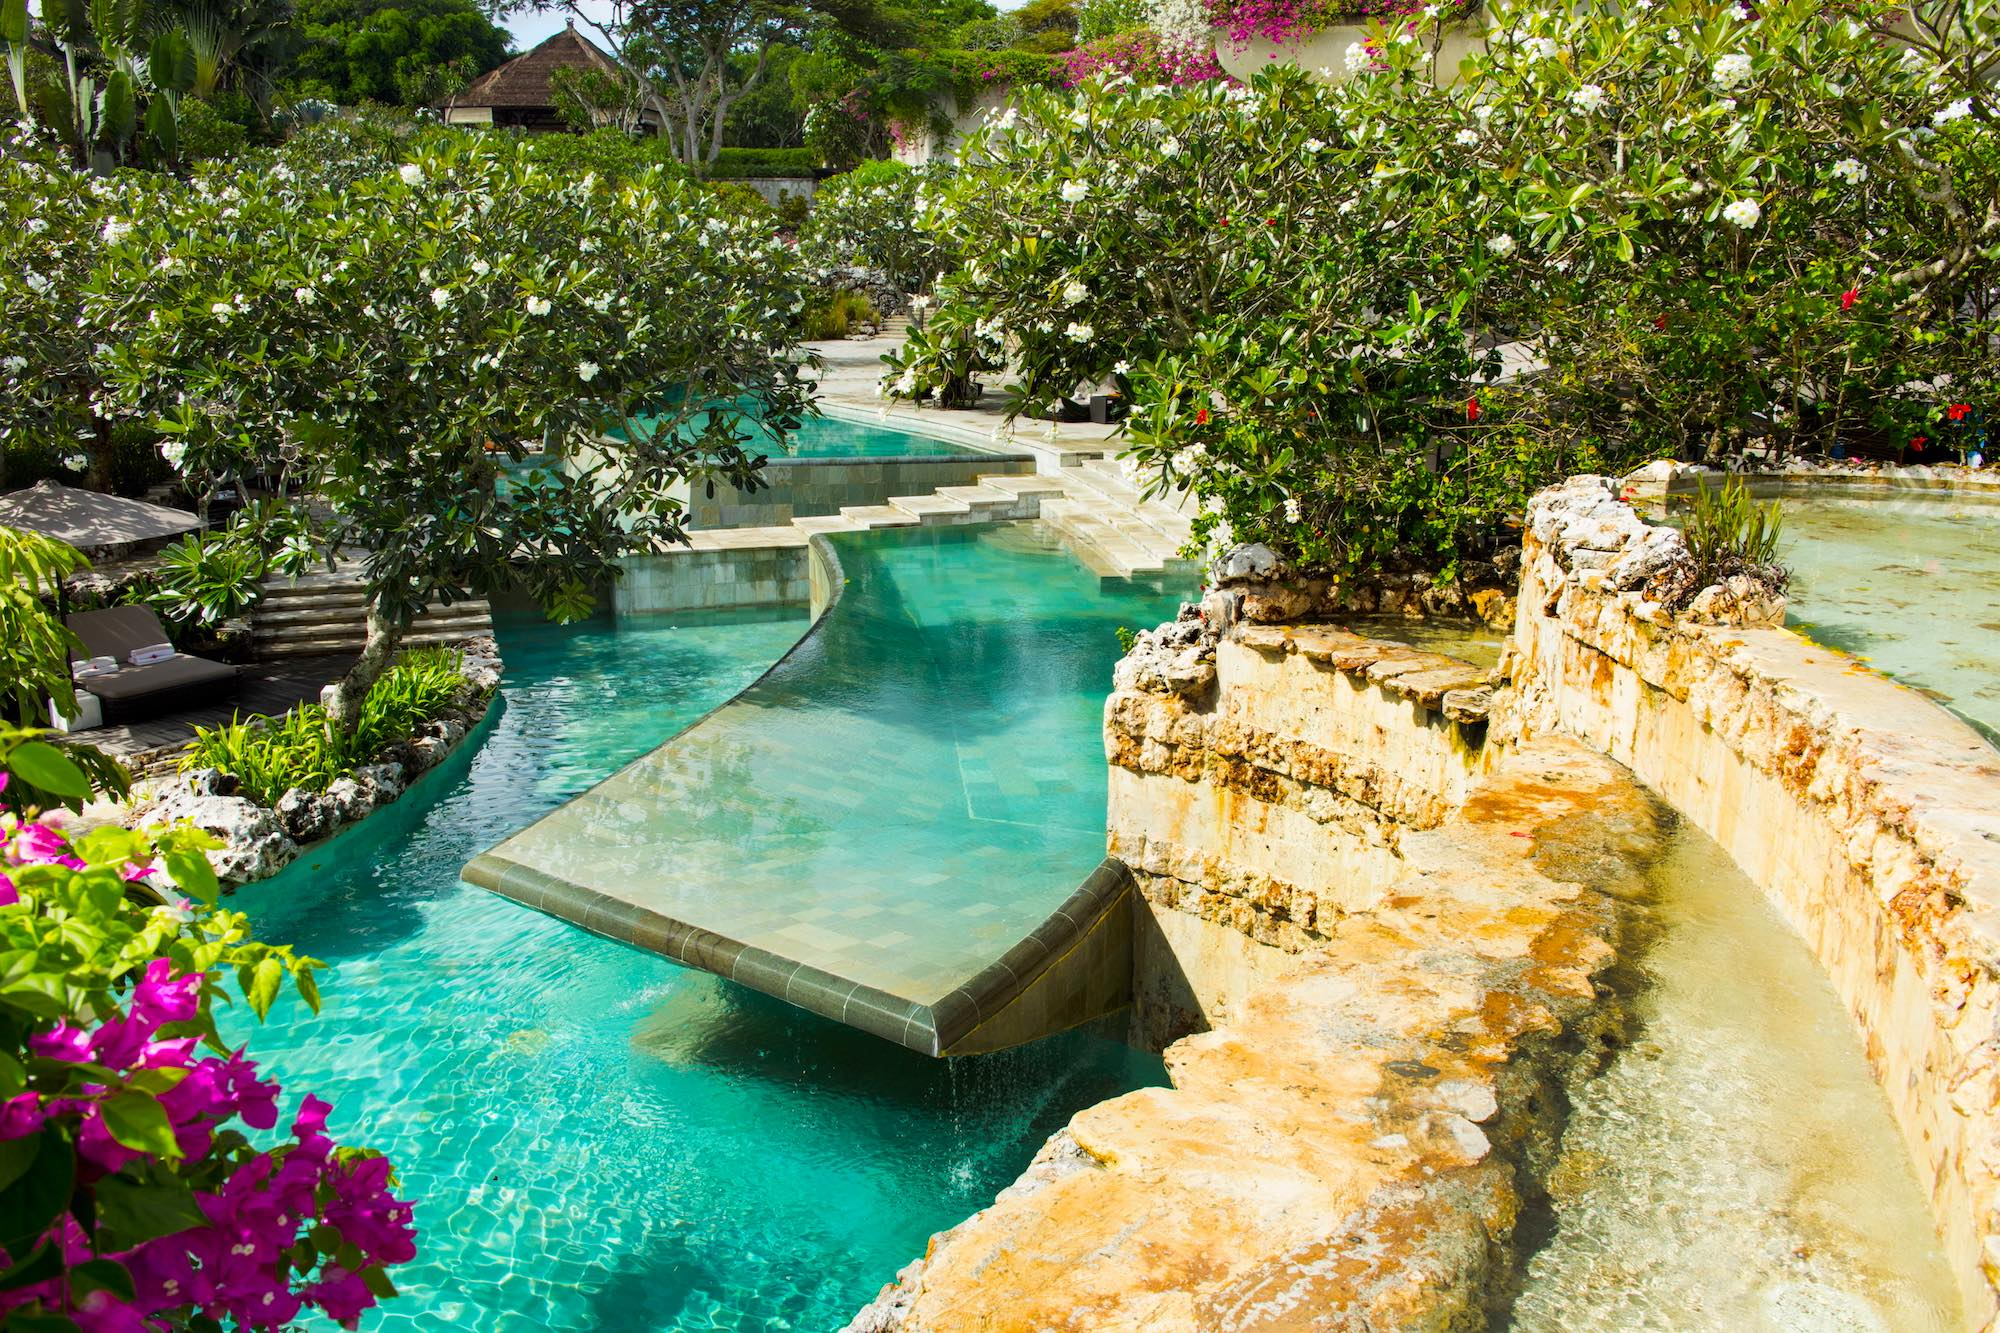 11 Bali Pools You Can't Help But Instagram